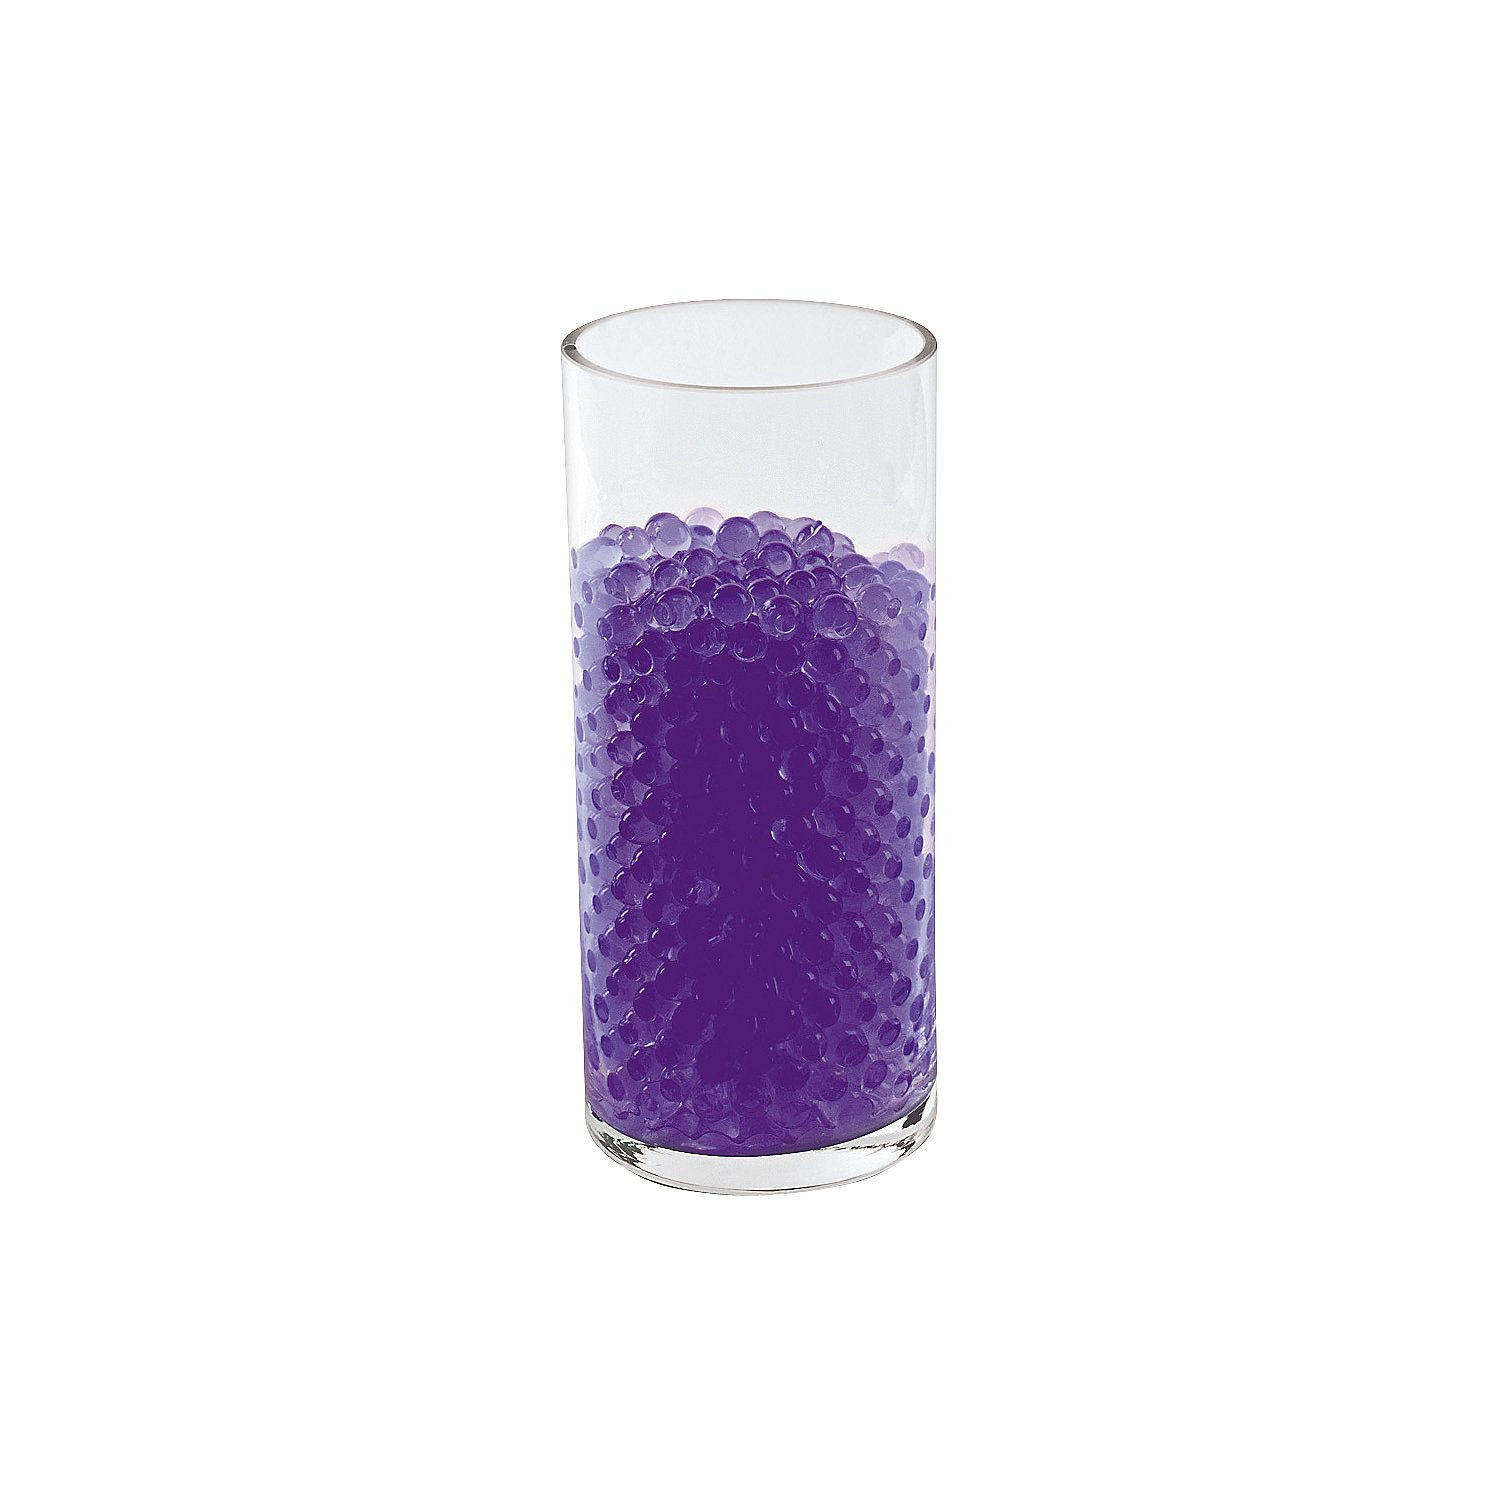 water beads for vases of purple pearl water beads orientaltrading com to go under the intended for 856e8ff19cd220476818ad51758bfe61